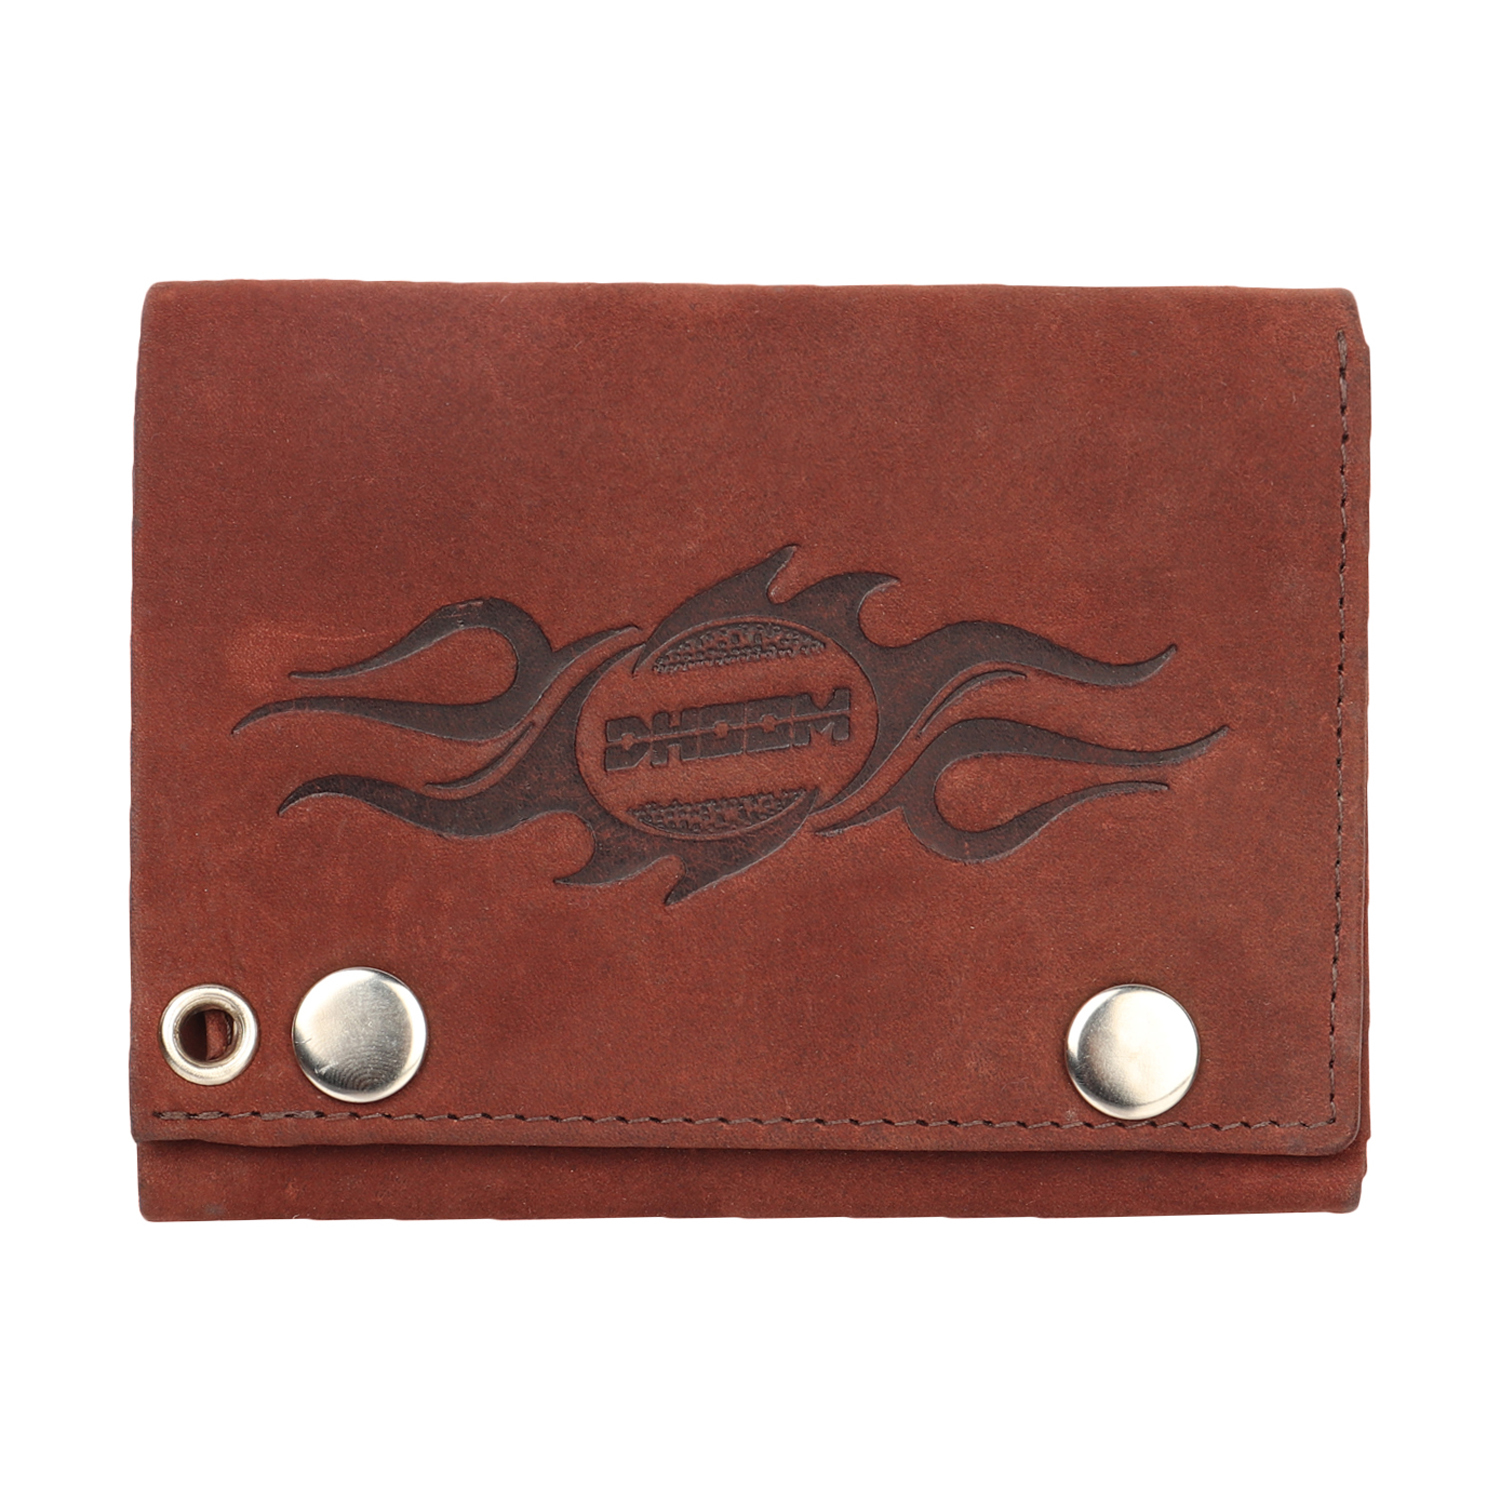 Genuine leather chain wallet